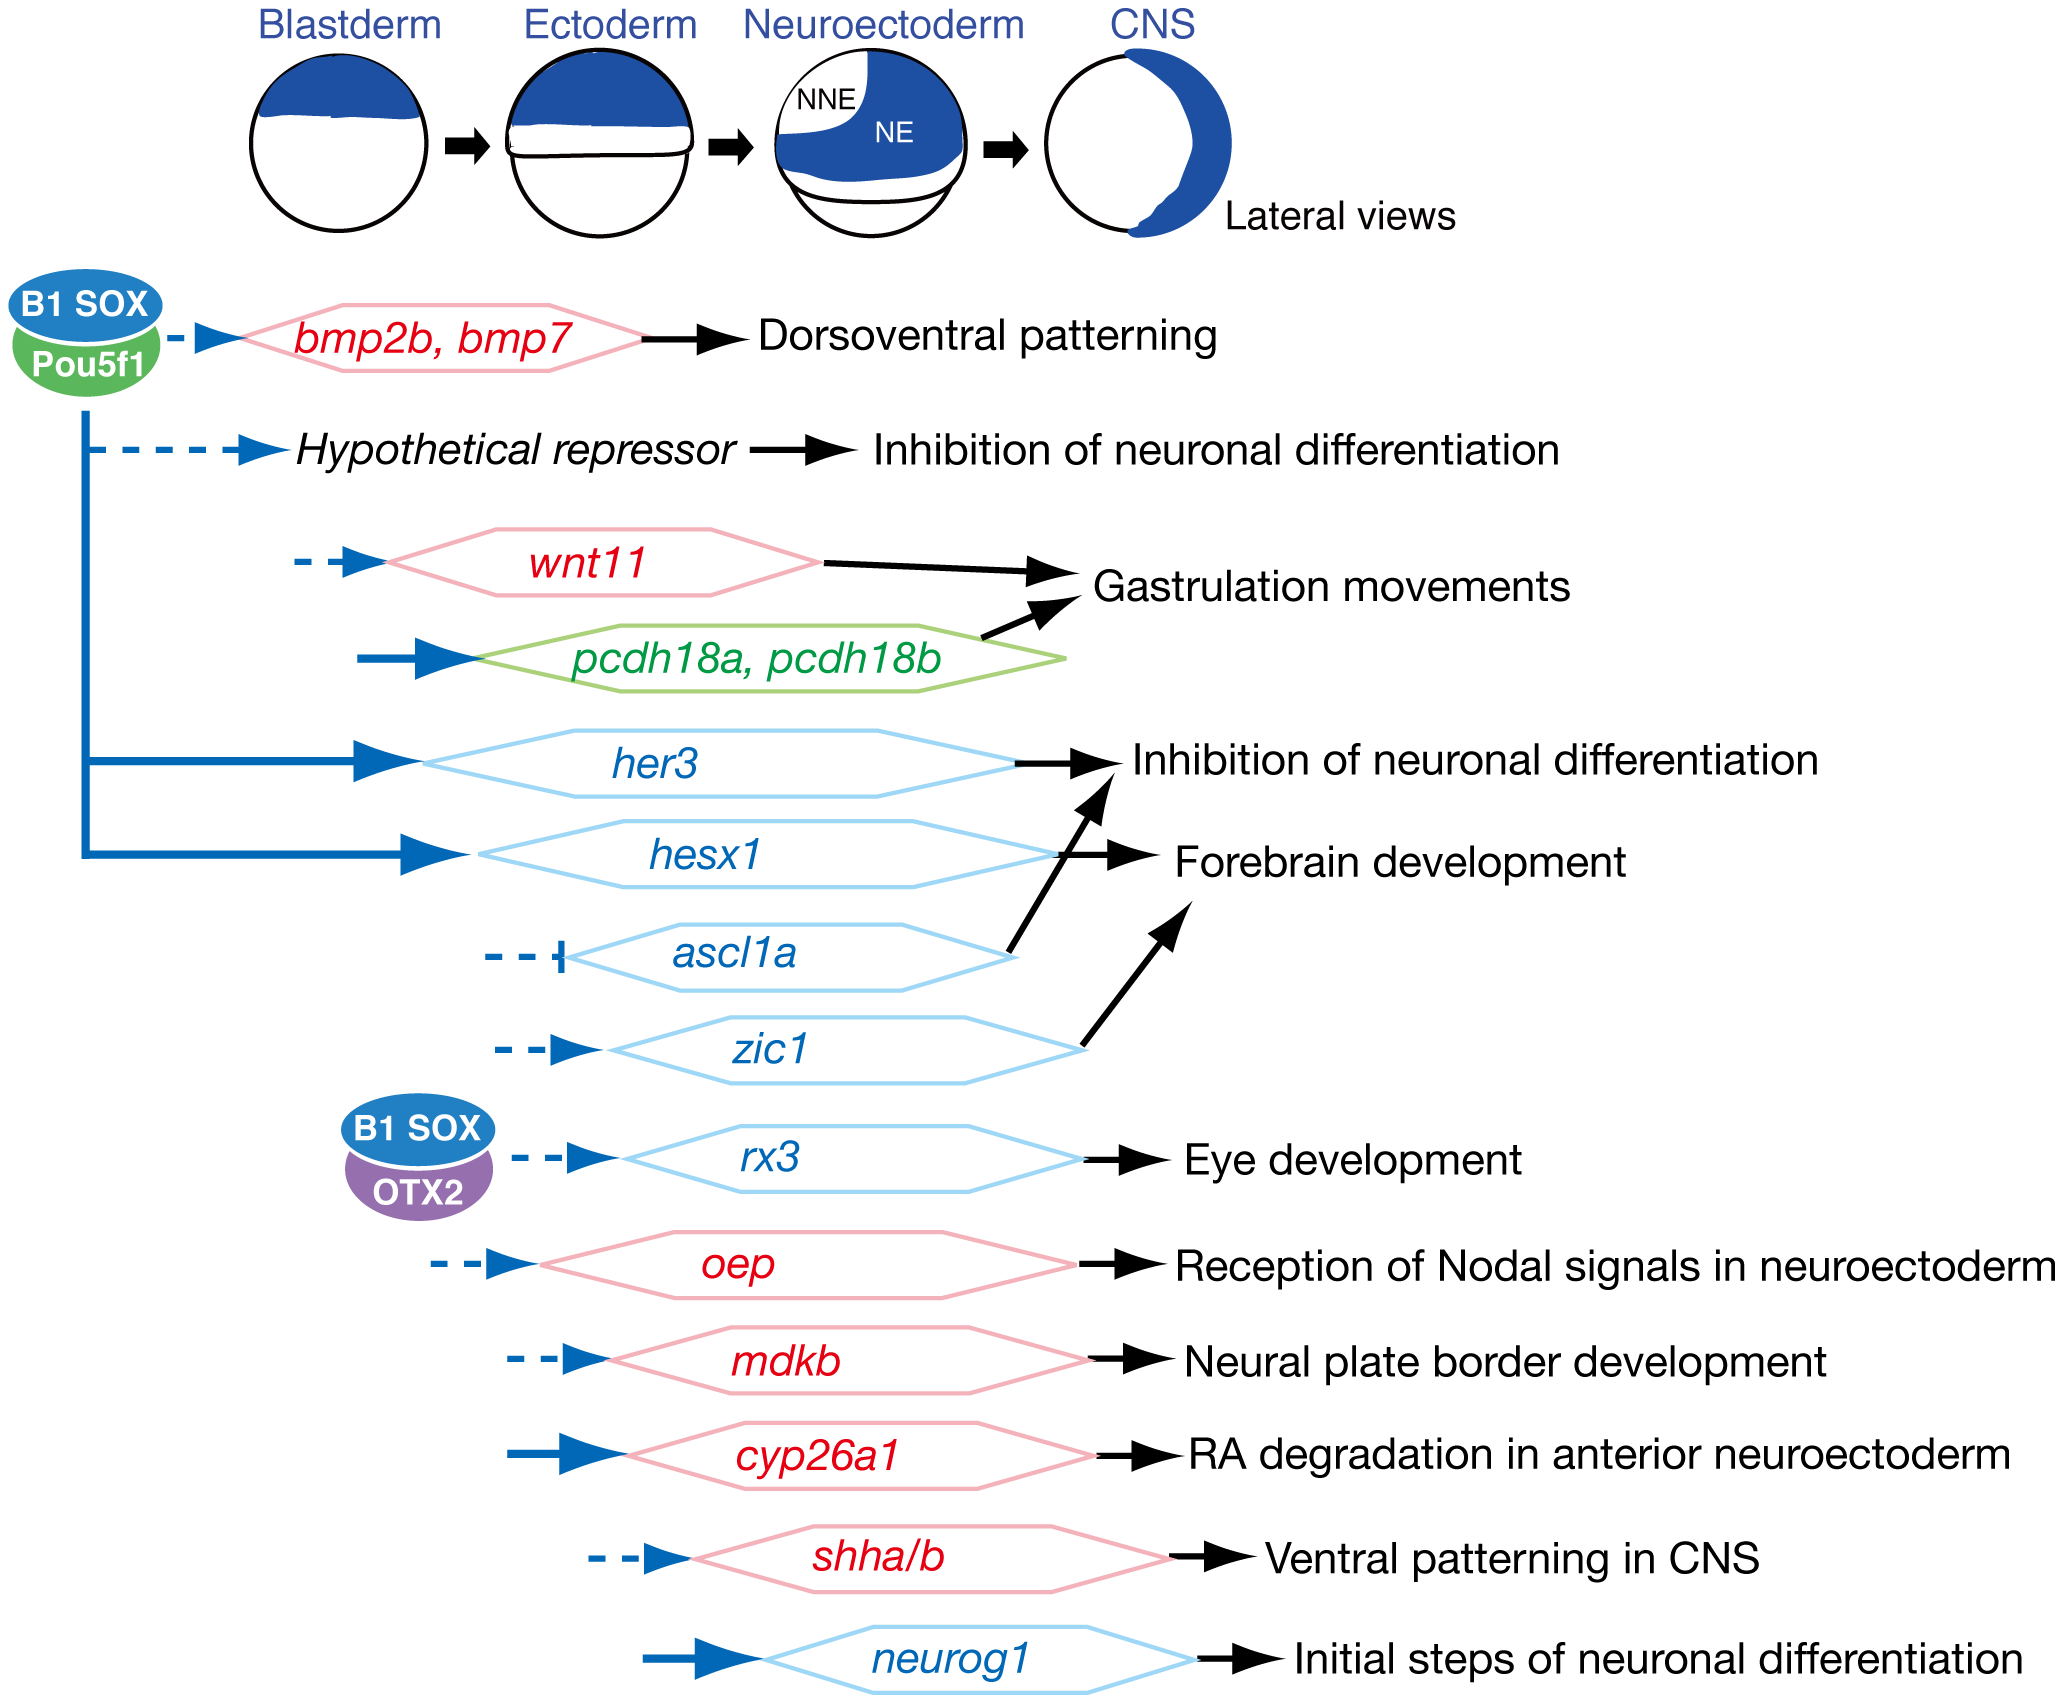 Summary of embryonic stage-dependent target gene regulation by B1 SOX.